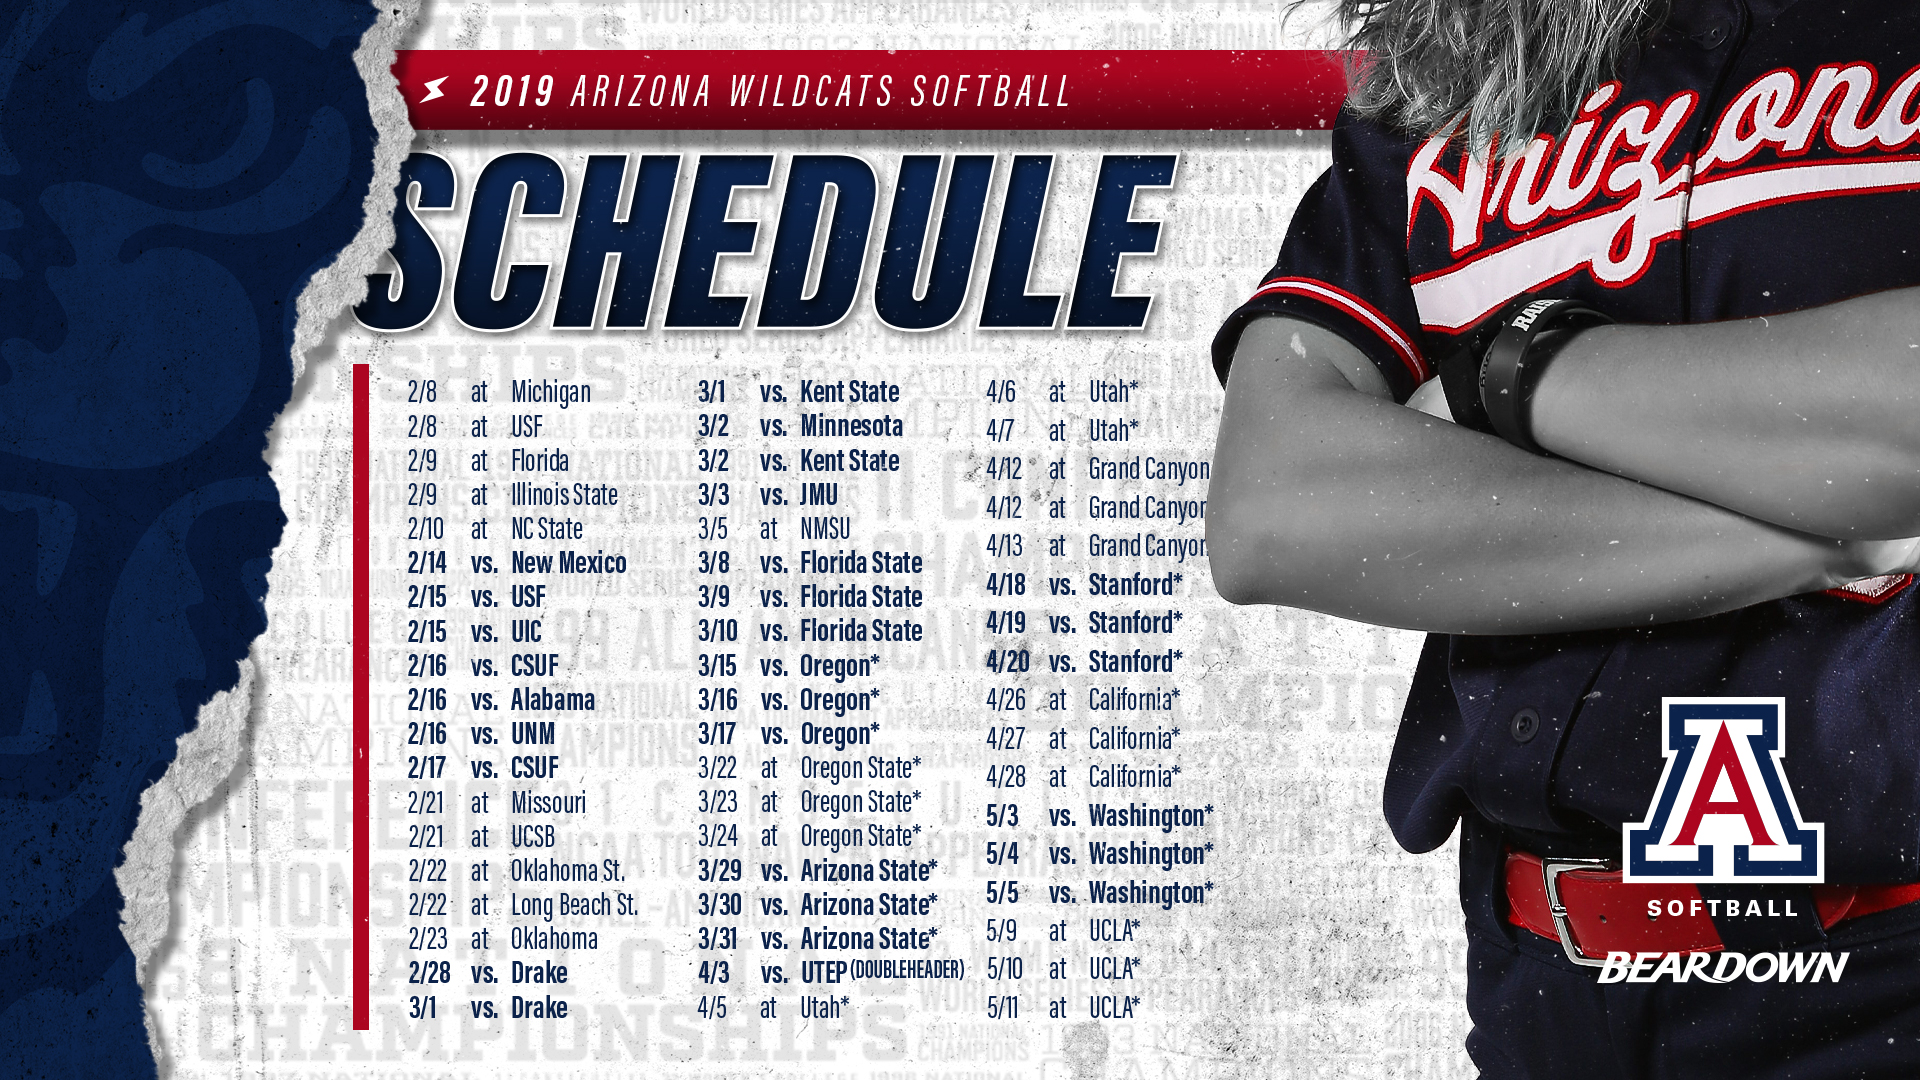 d958e1ecf82 Arizona Softball to Play 16 Televised Games in 2019 - University of ...